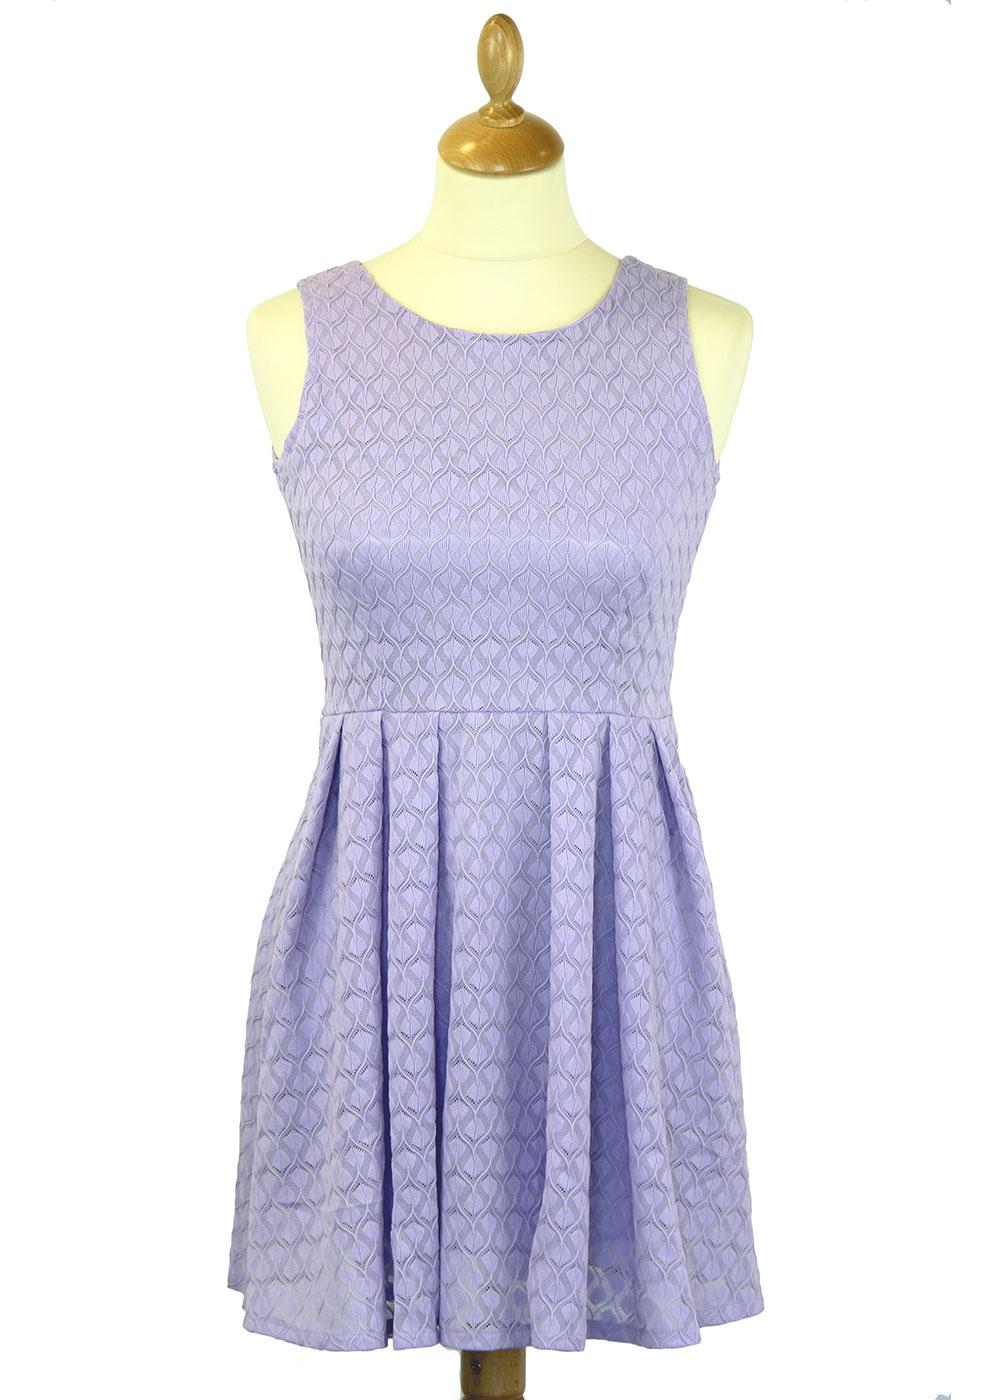 Elena LOVESTRUCK Retro Mod Textured Skater Dress